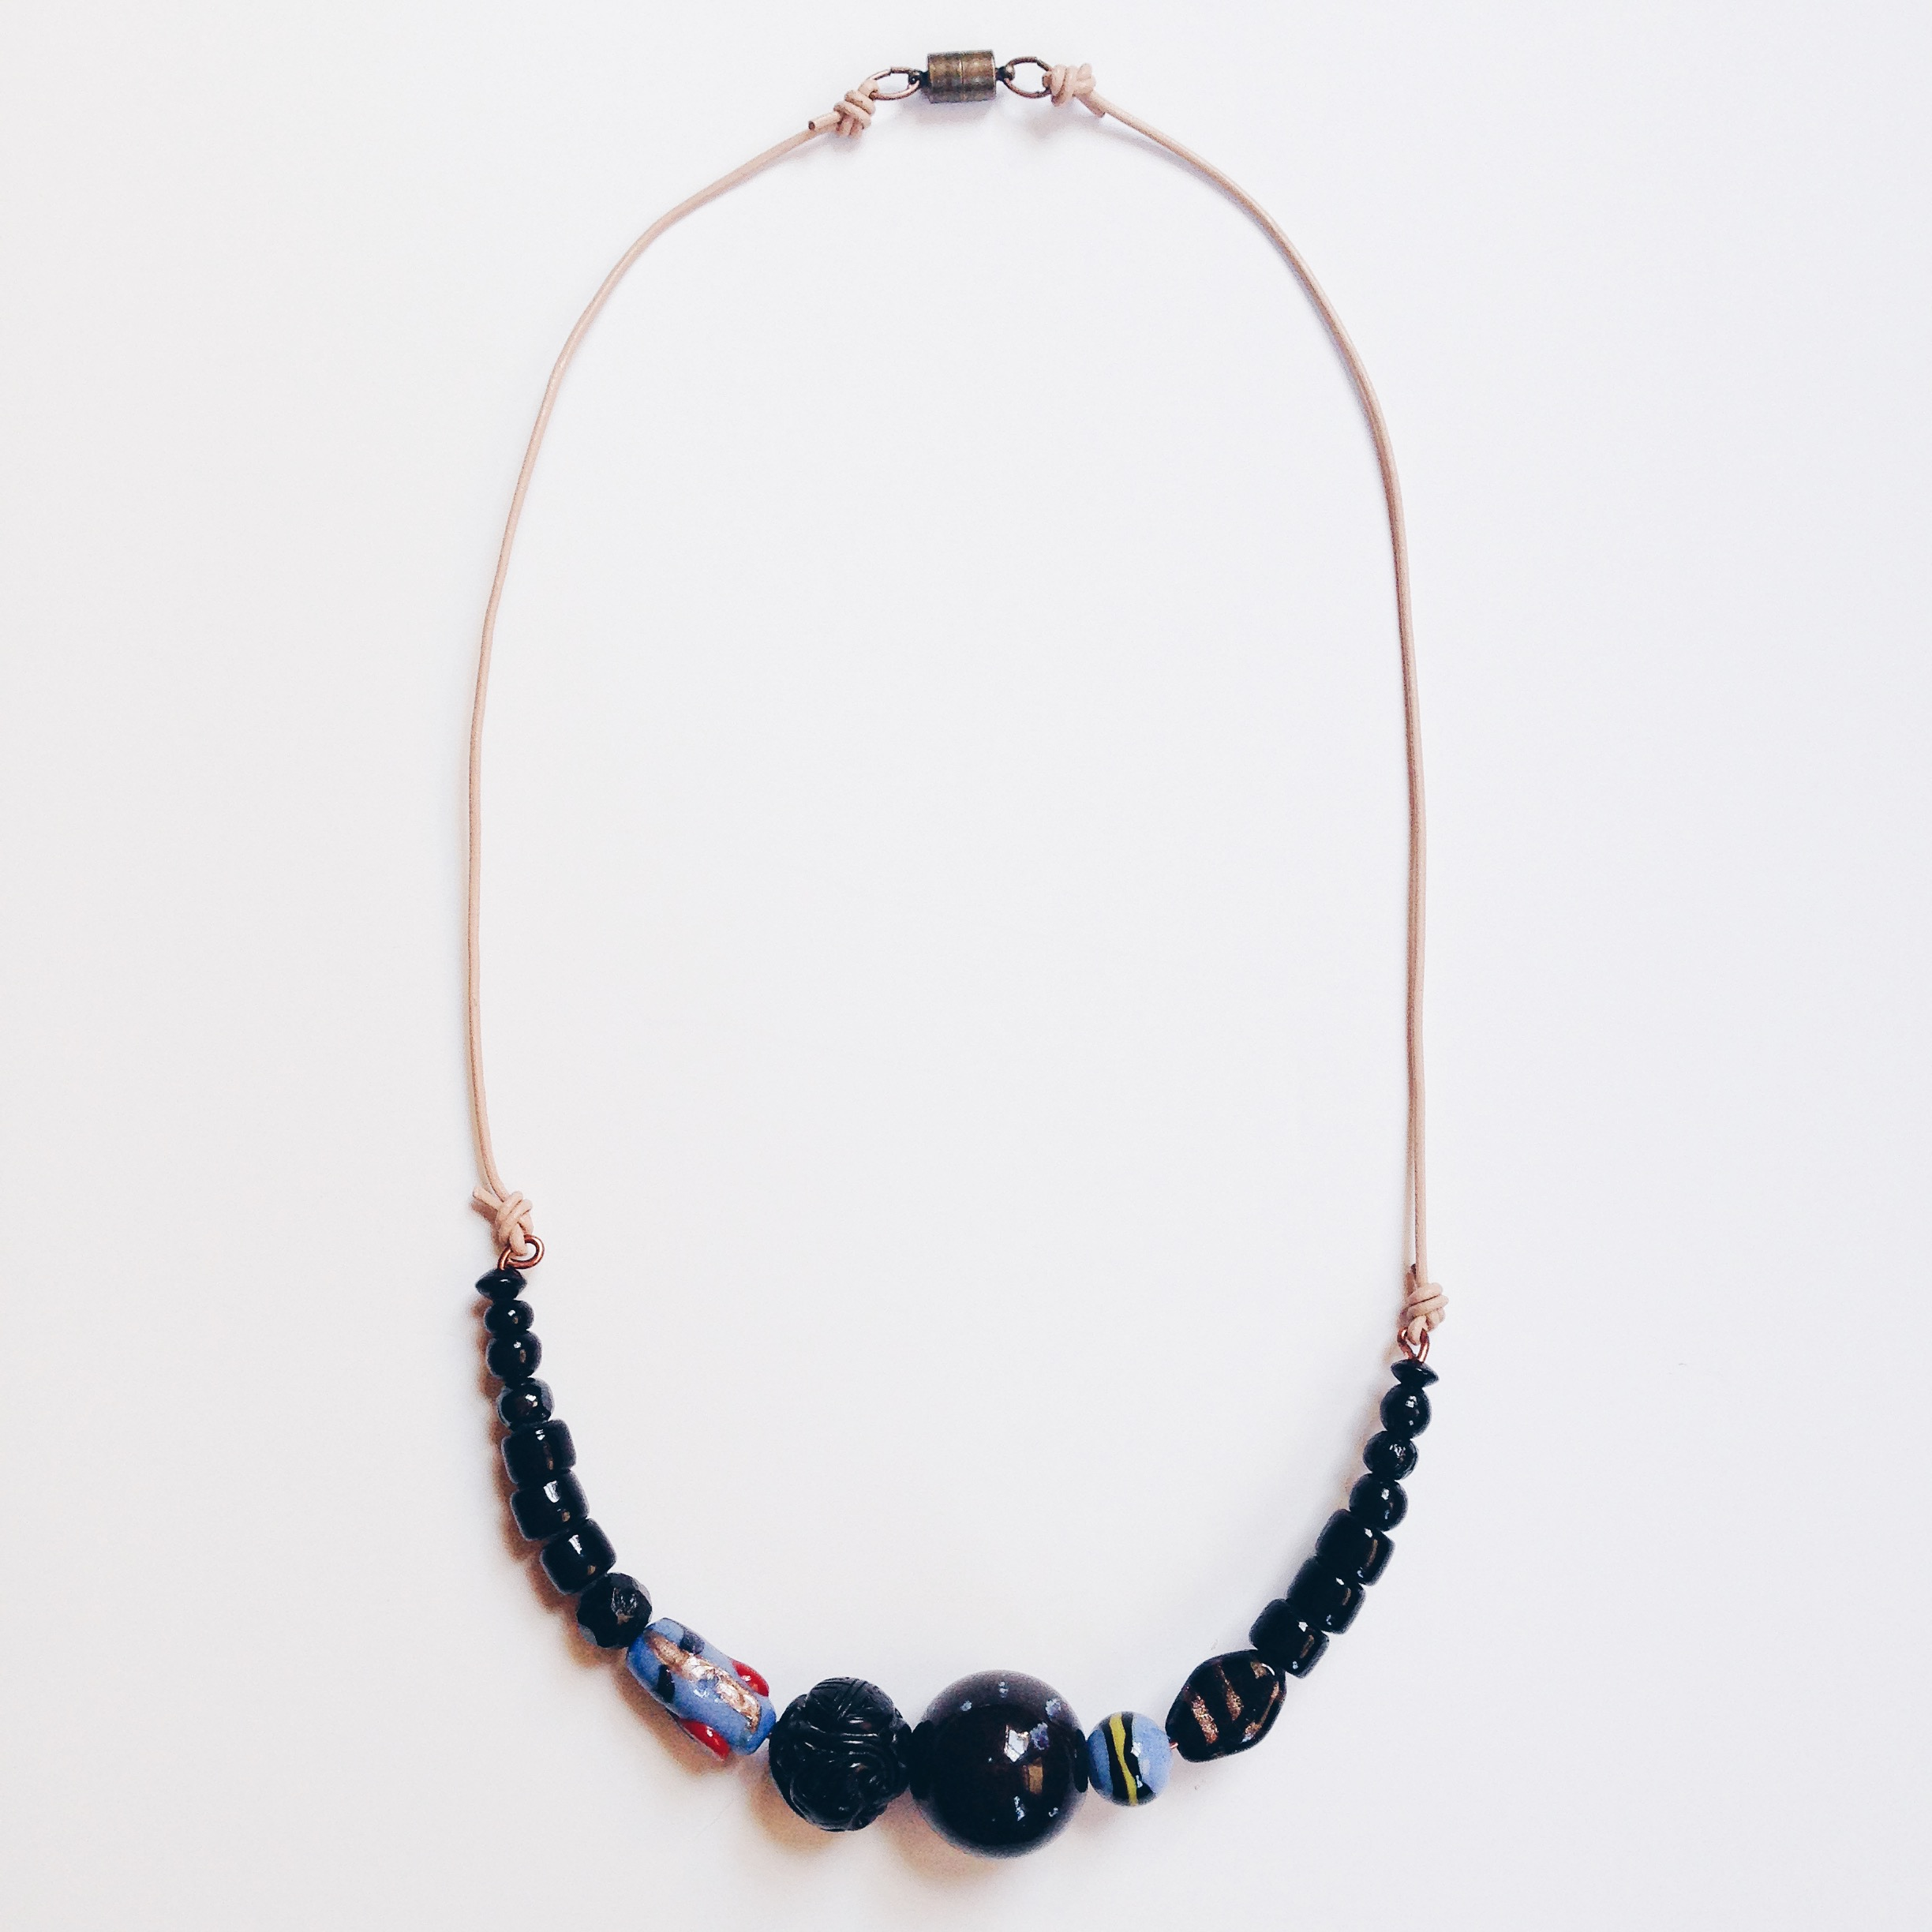 Petaluma Necklace /// Westervin